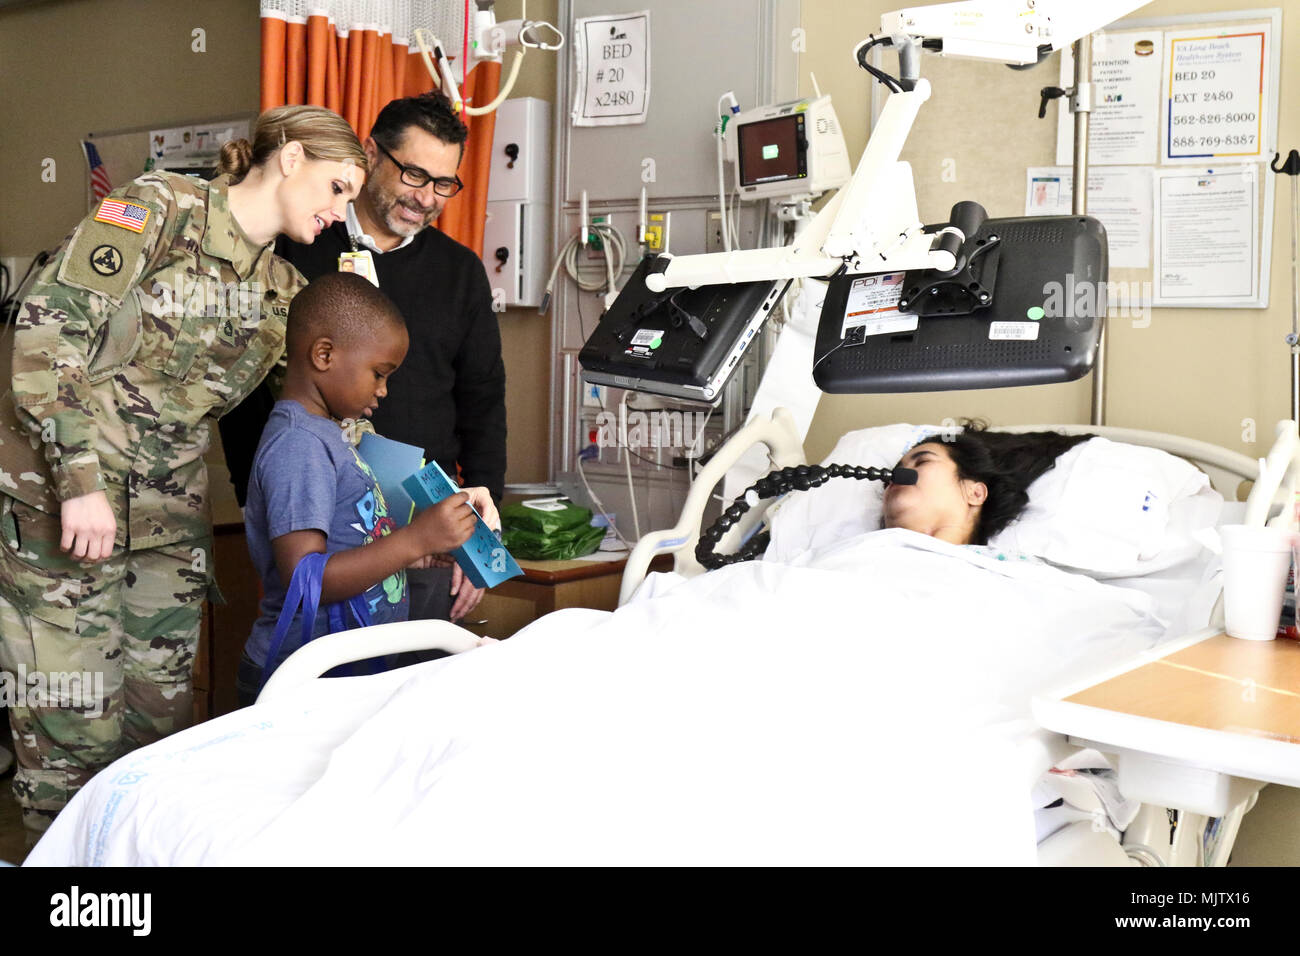 Members Of The 79th Tsc Visit Veterans At The Long Beach Veterans Affairs Medical Center On Dec 22 2017 Stock Photo Alamy